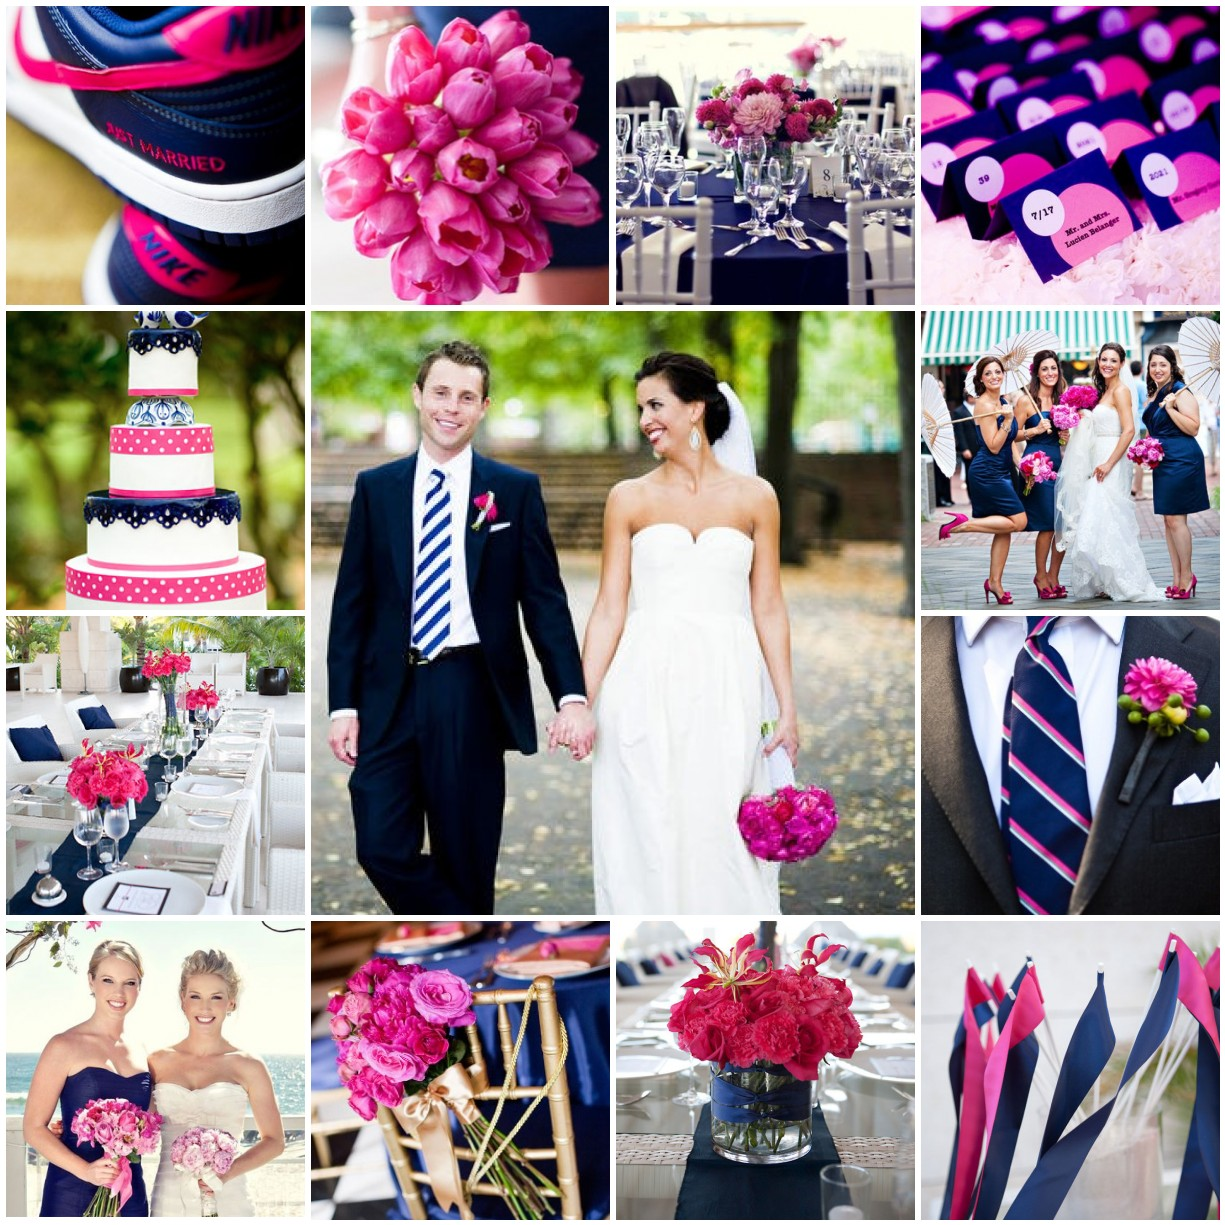 Blue And Pink Wedding Ideas: The Blushing Bride